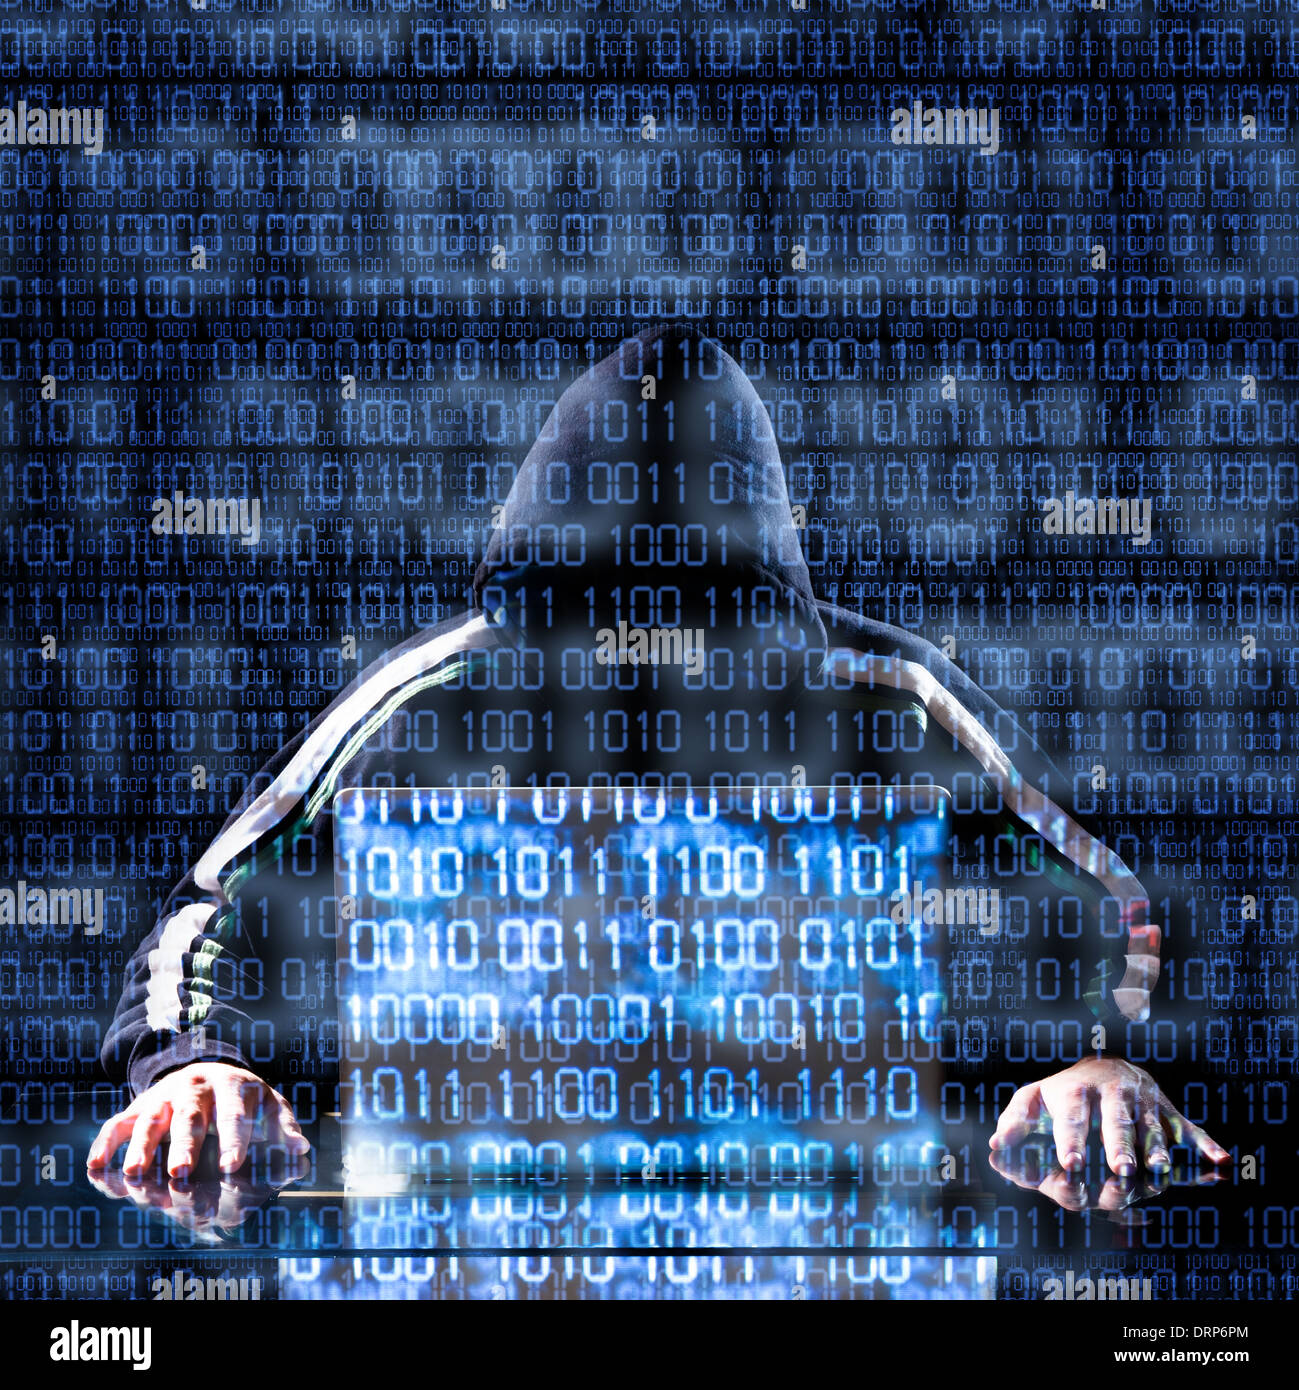 Hacker waiting for something with binary code in background - Stock Image